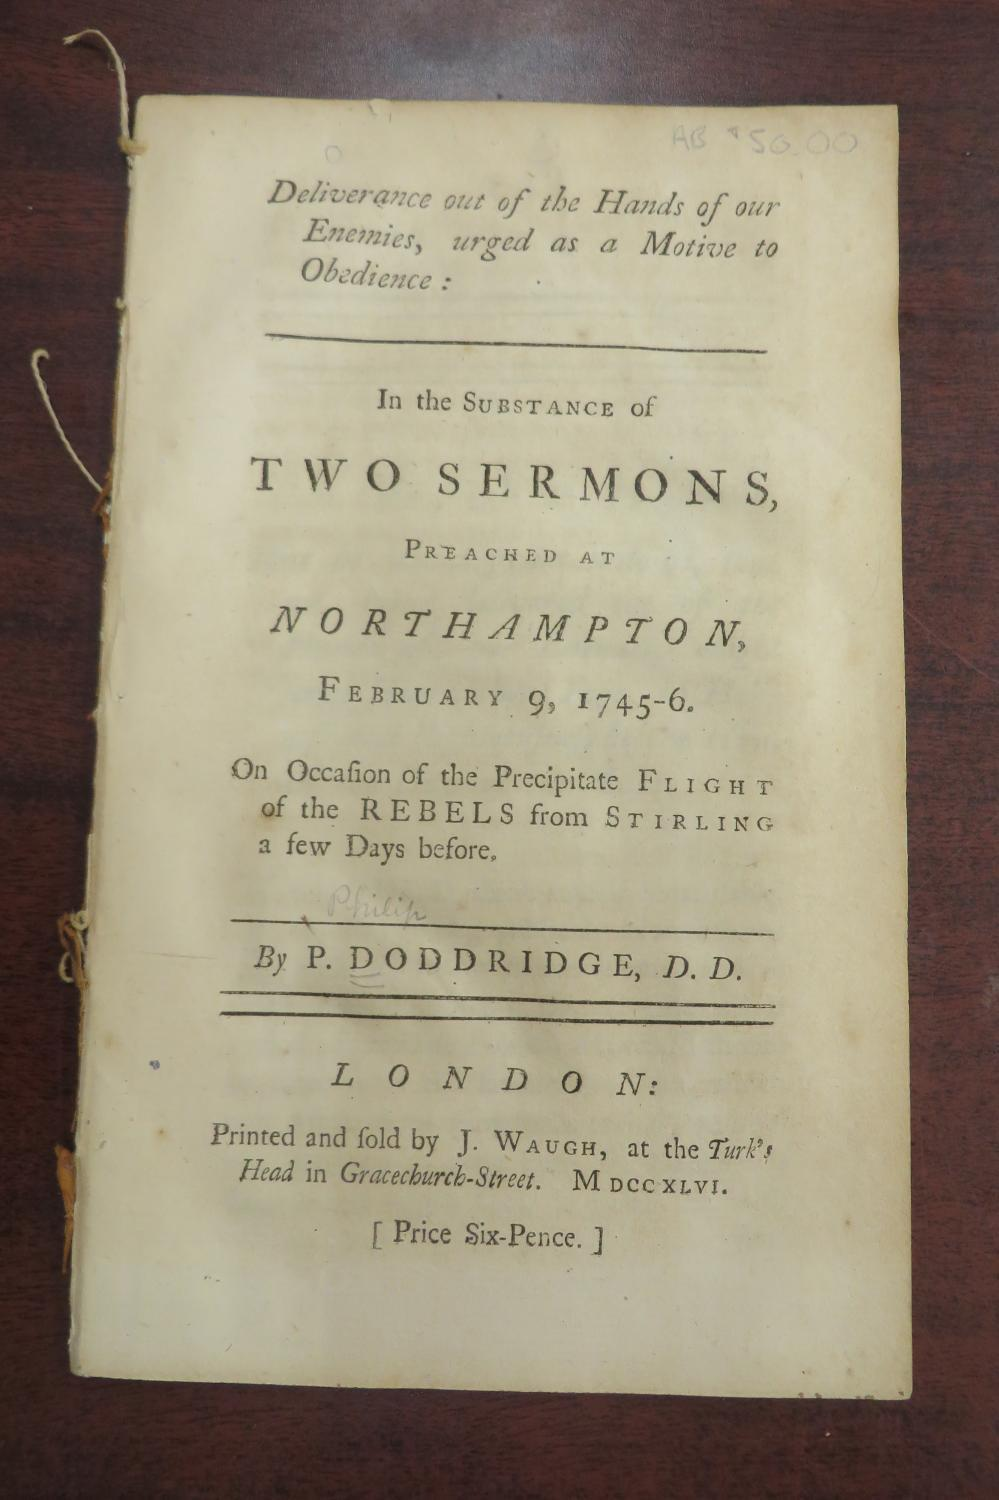 Deliverance out of the Hands of our Enemies, urged as a Motive to Obedience: In the Substance of Two Sermons Preached at Northampton February , 1745-6.